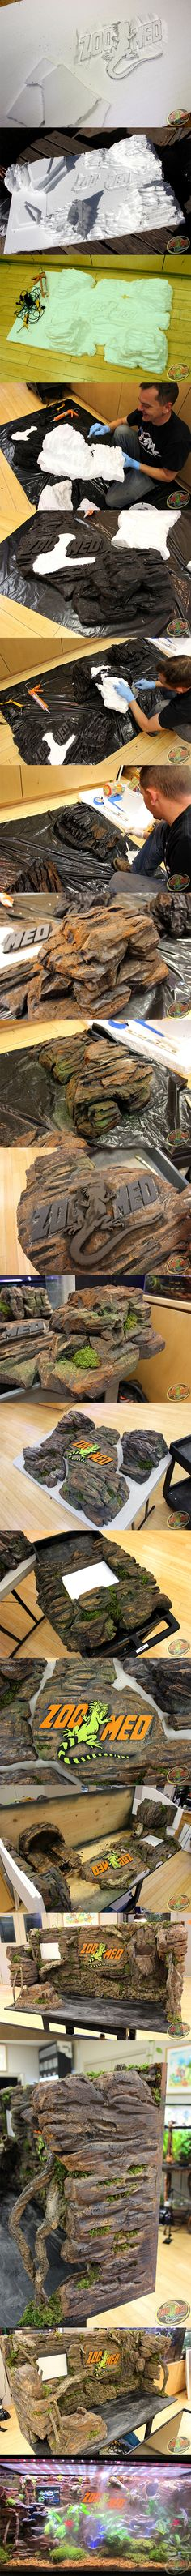 Incredible custom #Habitat display by Zoo Med Animal Care Specialist Jim for the 2015 @globalpetexpo.